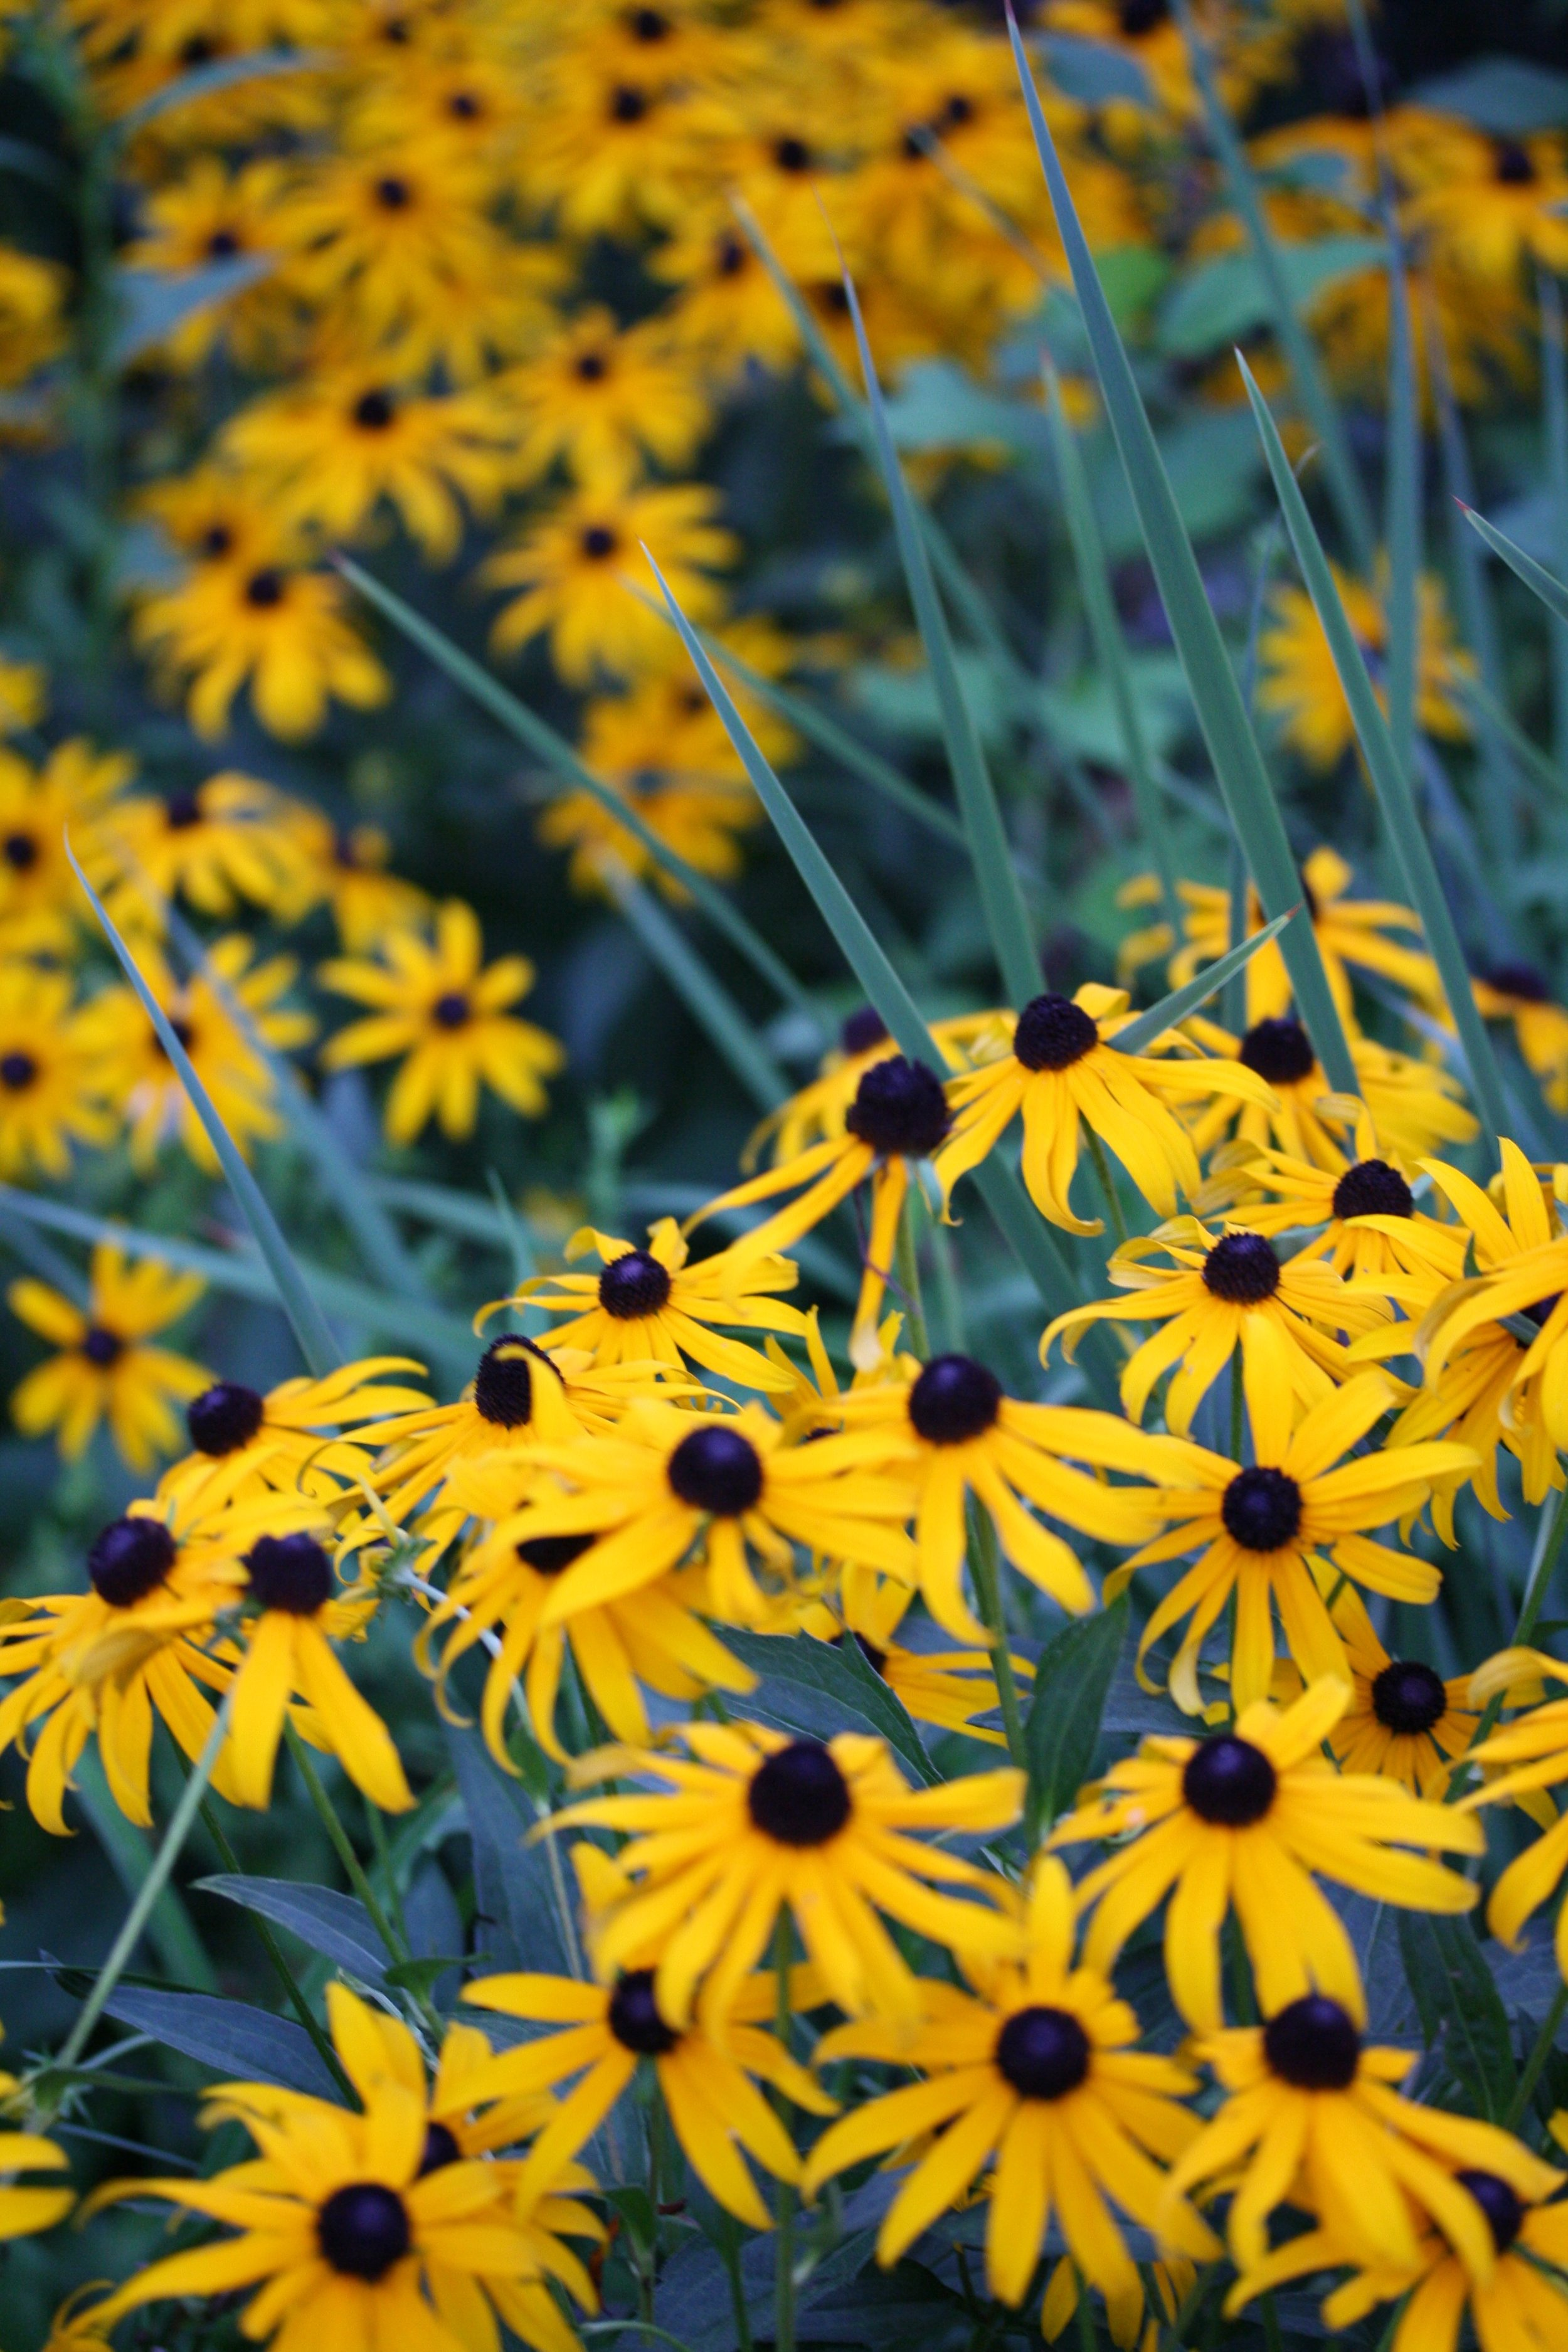 black-eyed-susans-4059753.jpg